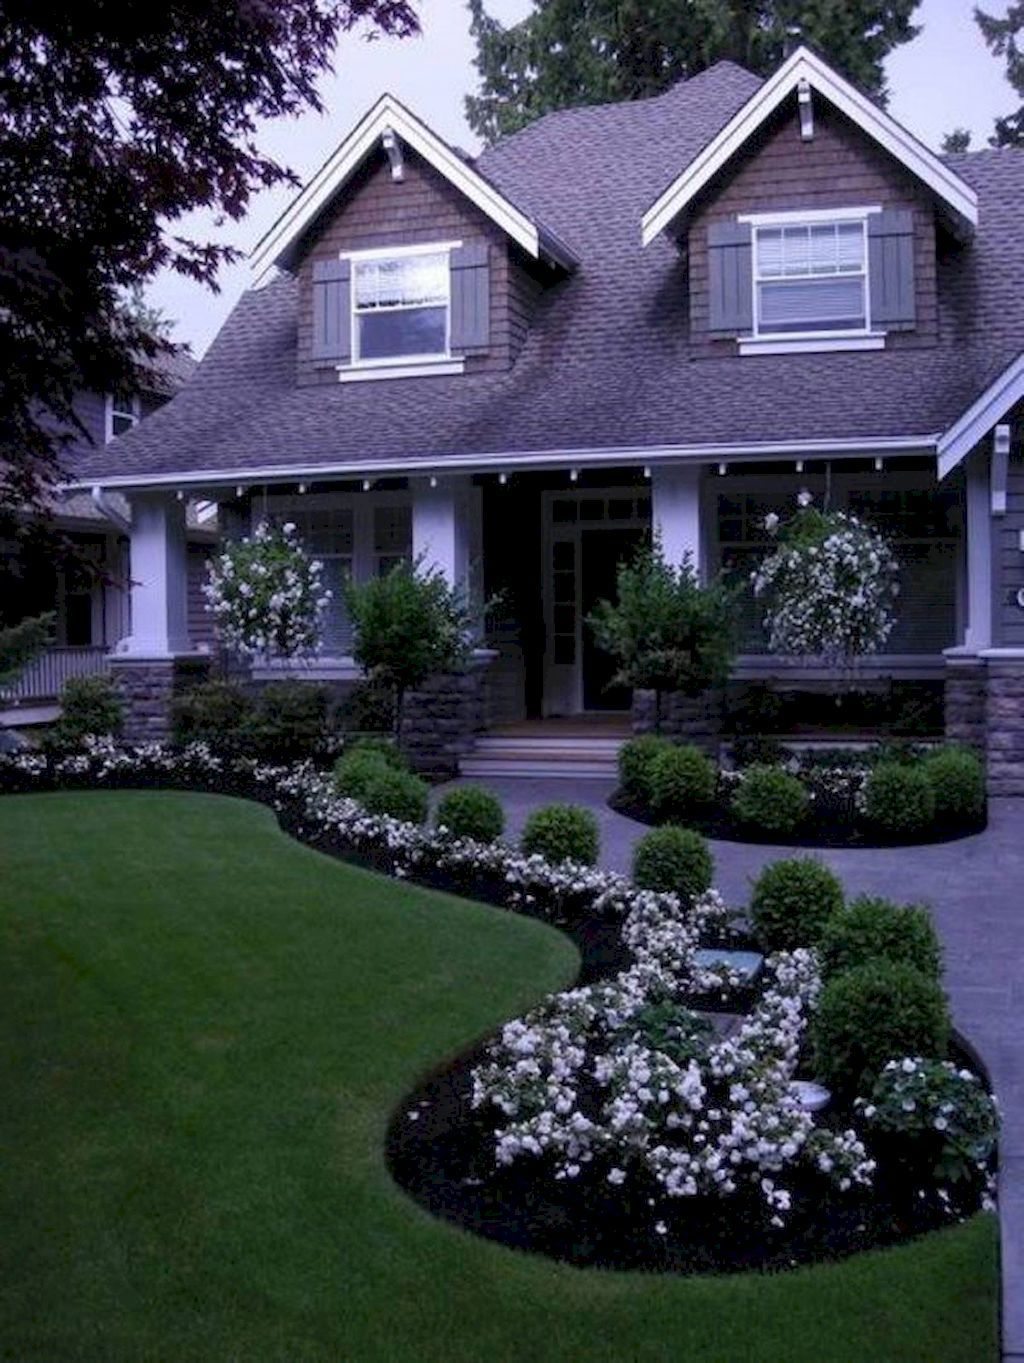 40 beautiful front yard landscaping ideas yard for Landscaping ideas for front of home